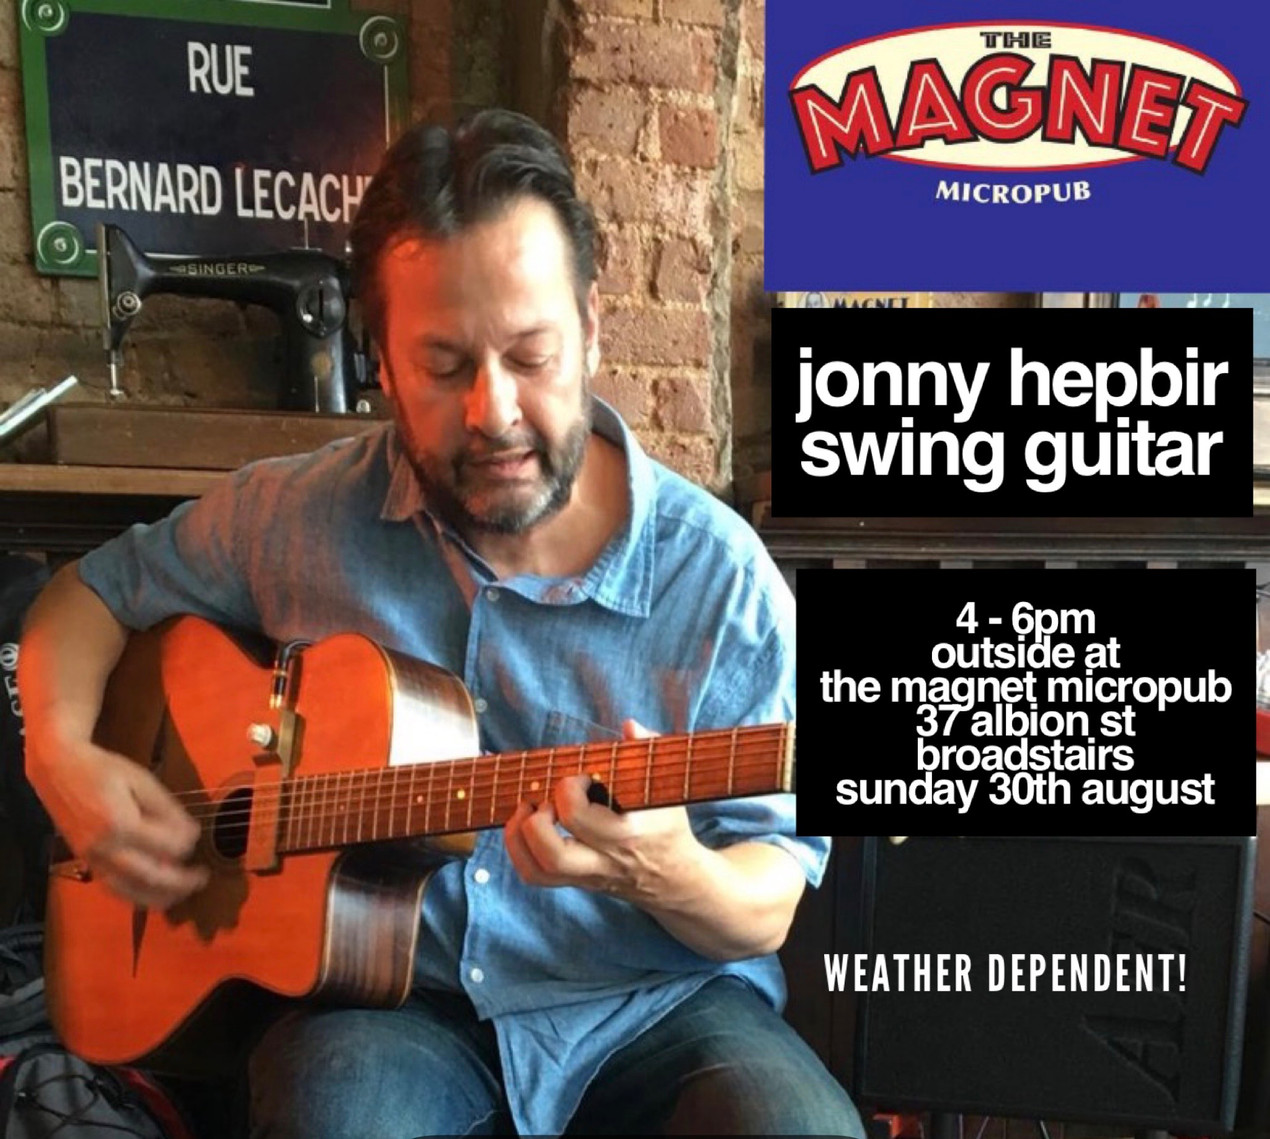 Jonny Hepbir Solo Gypsy Jazz Guitarist Live Sunday 30th August At The Magnet Micropub Broadstairs, Kent